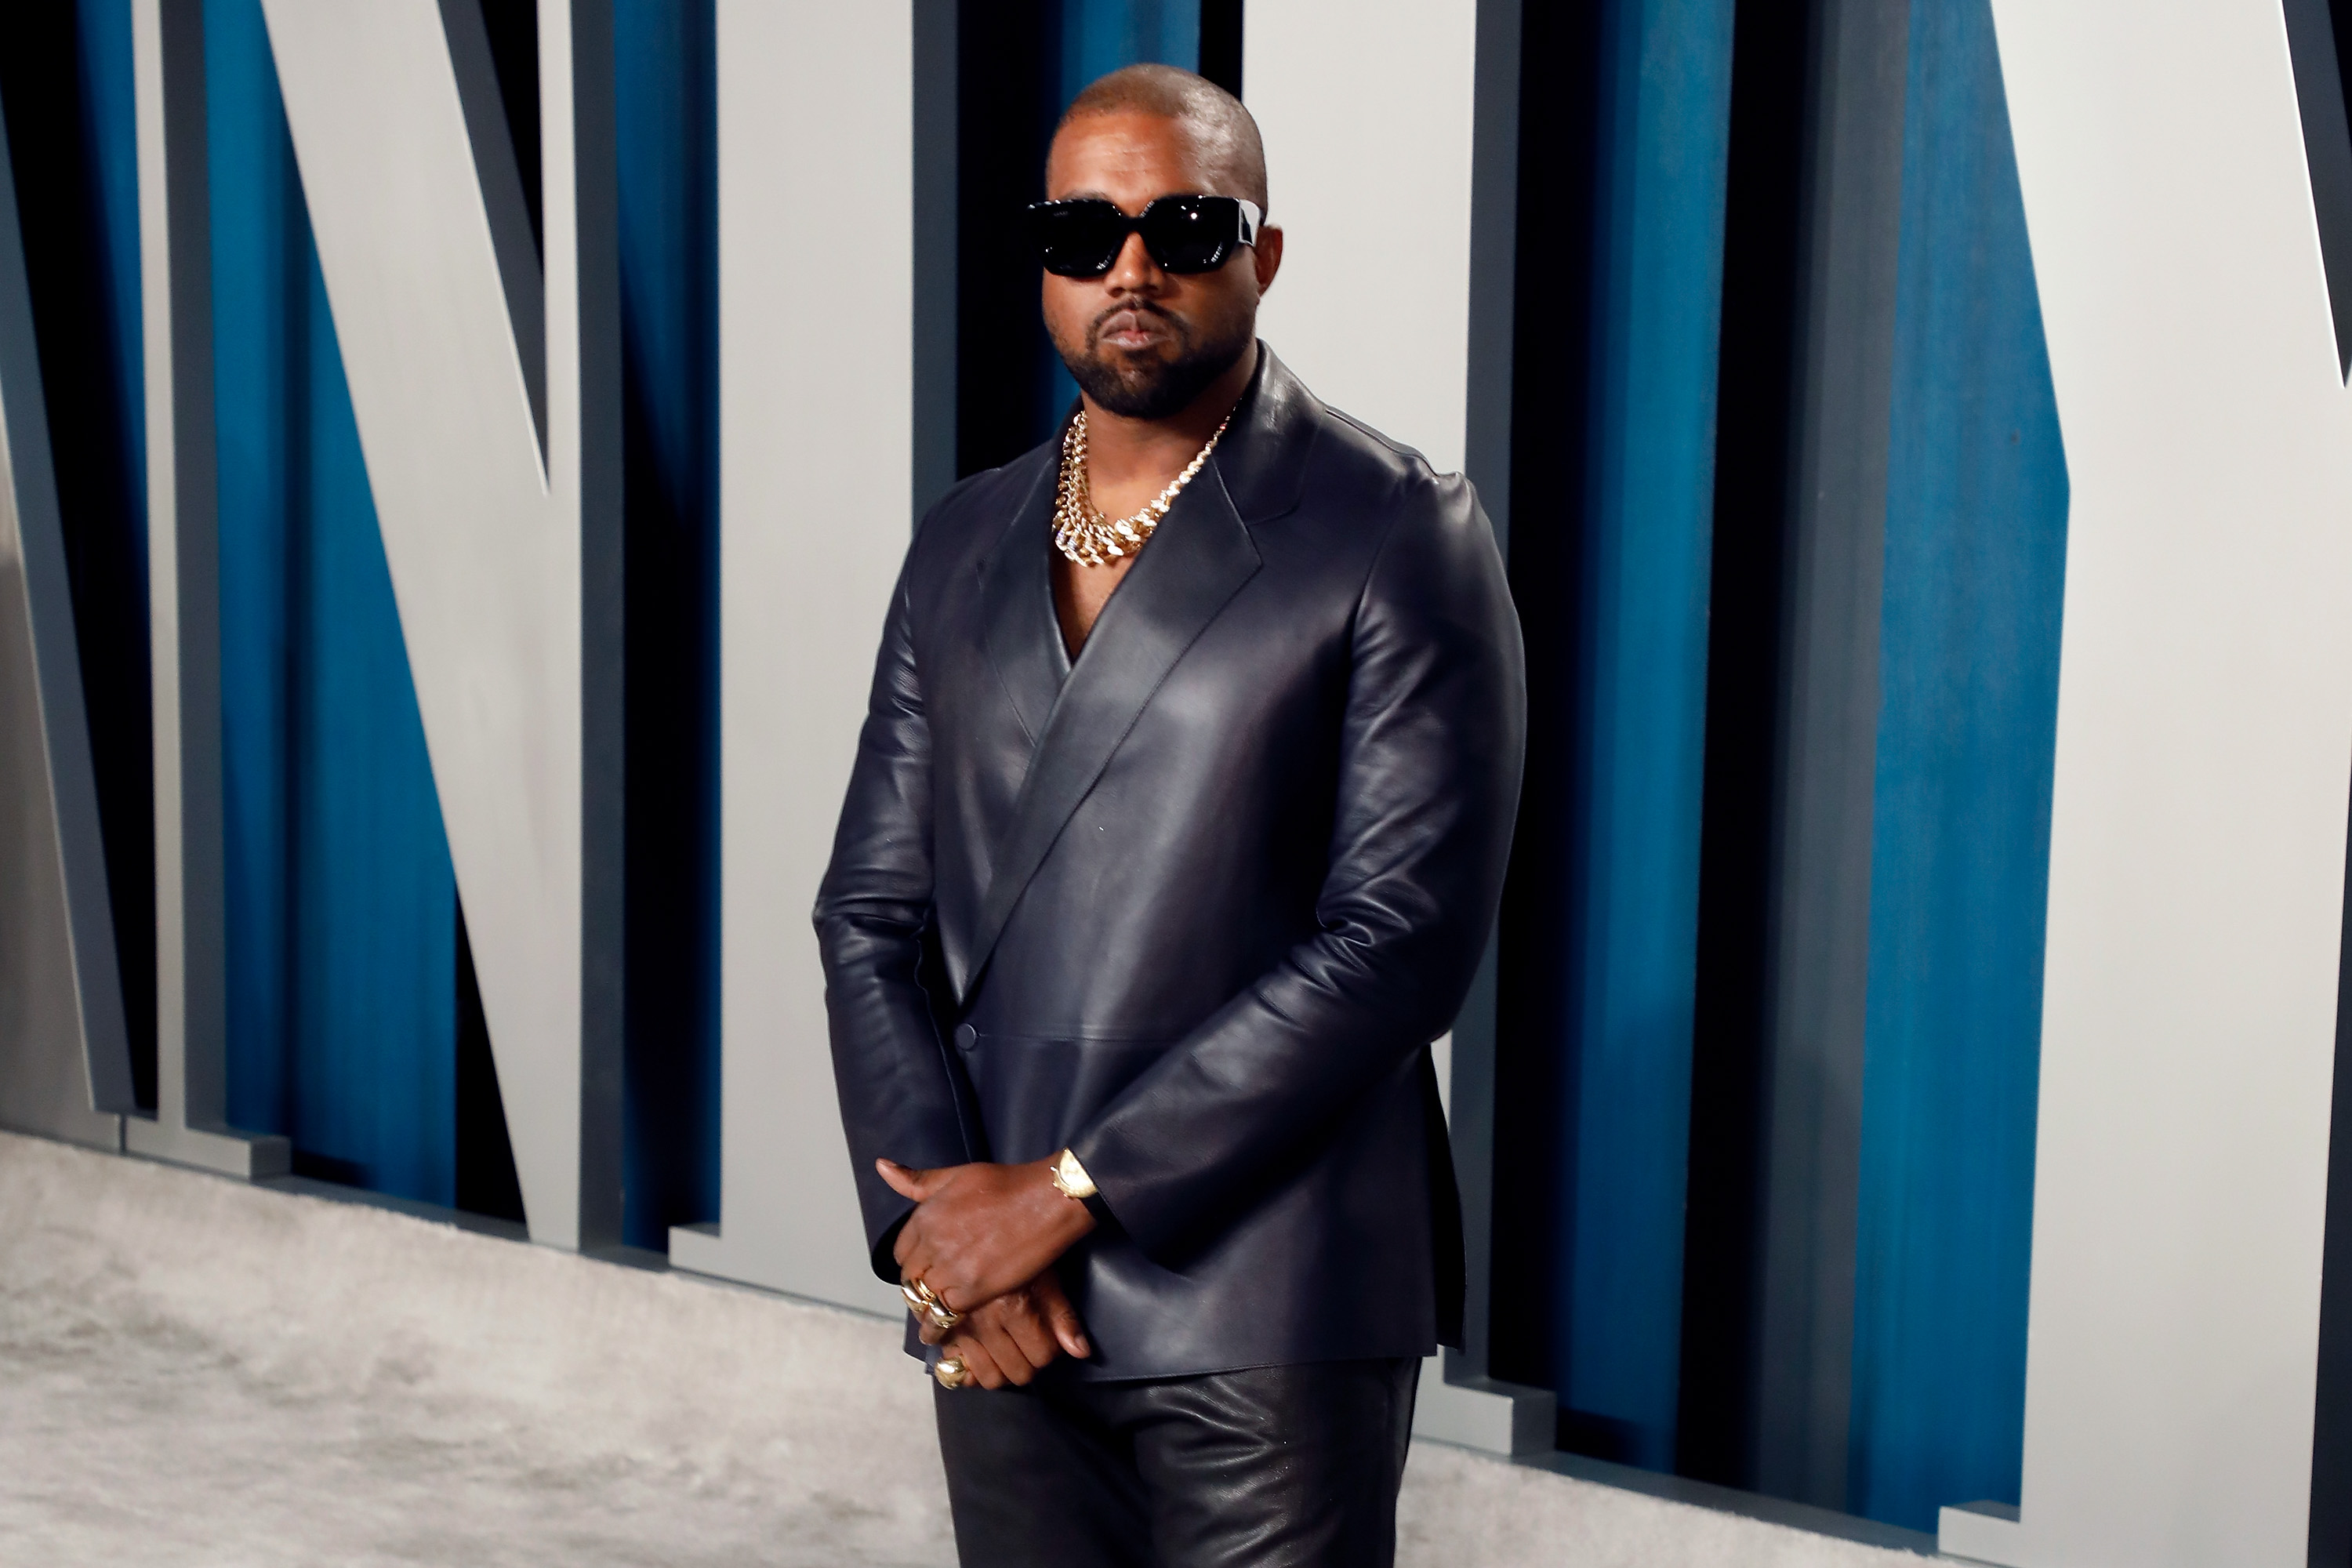 Kanye West attends the 2020 Vanity Fair Oscar Party Feb 9, 2020 in Beverly Hills, California.